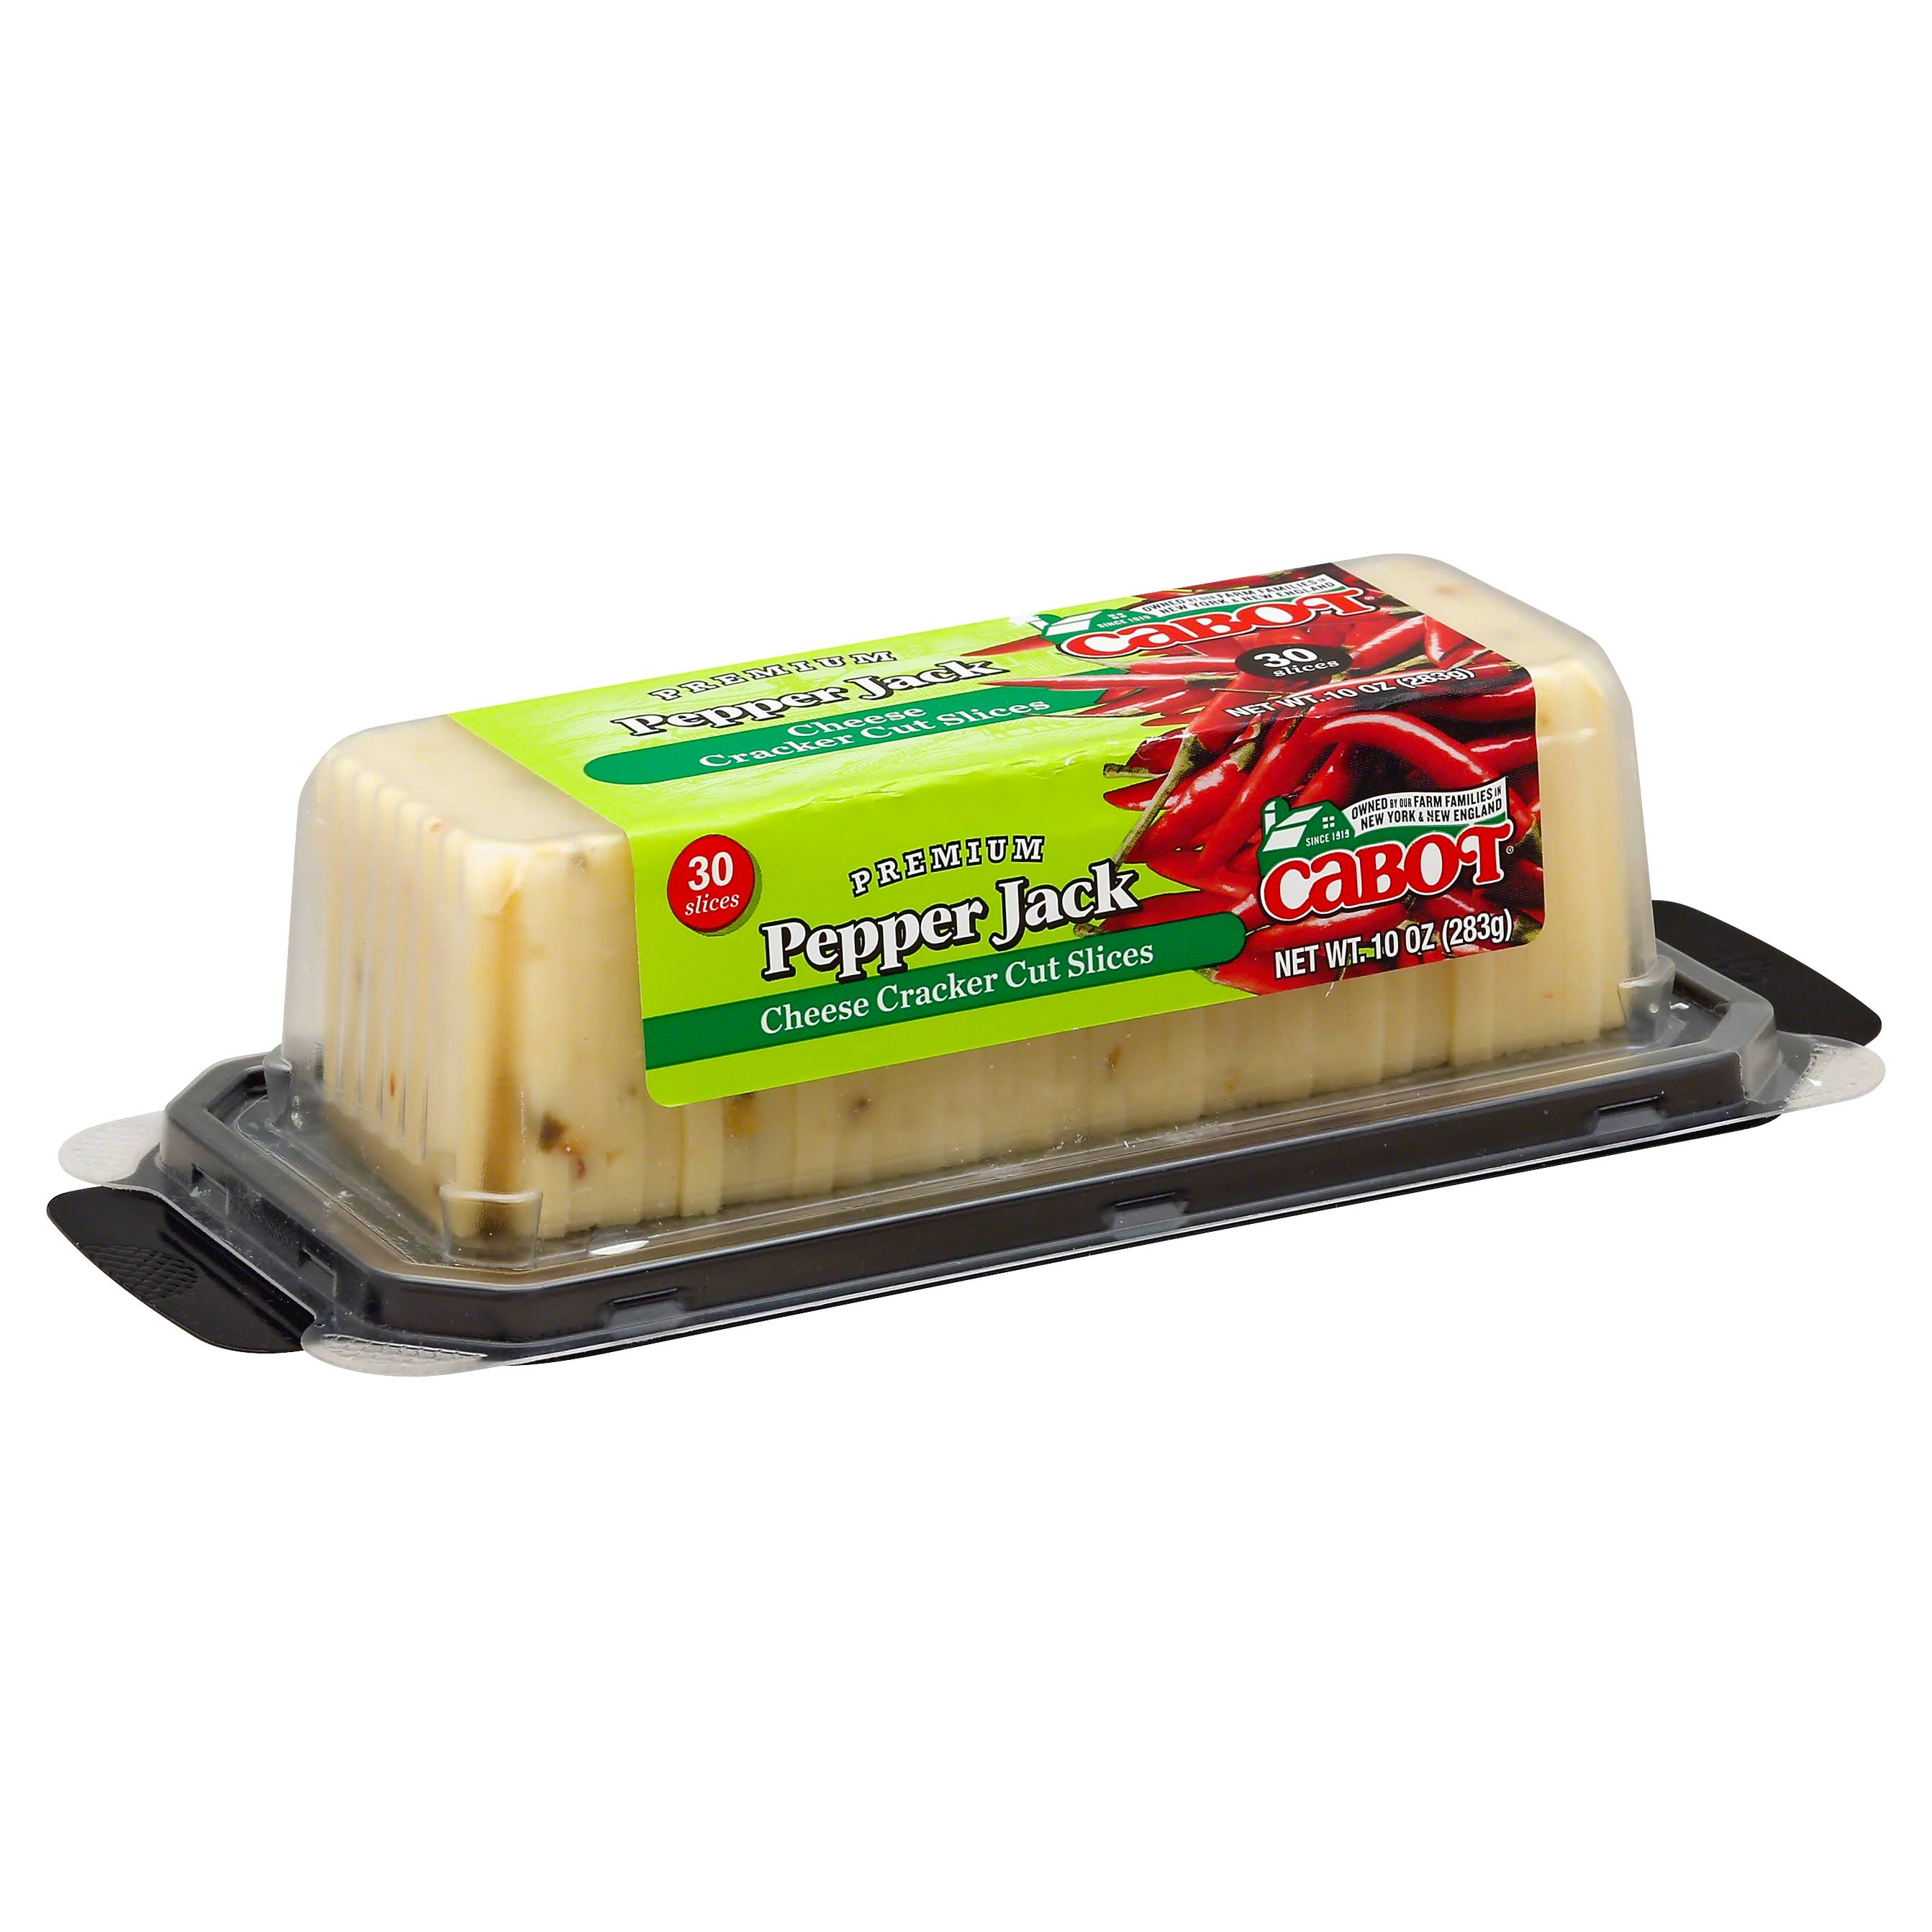 Cabot Cheese, Cracker Cut Slices, Pepper Jack - 30 slices, 10 oz